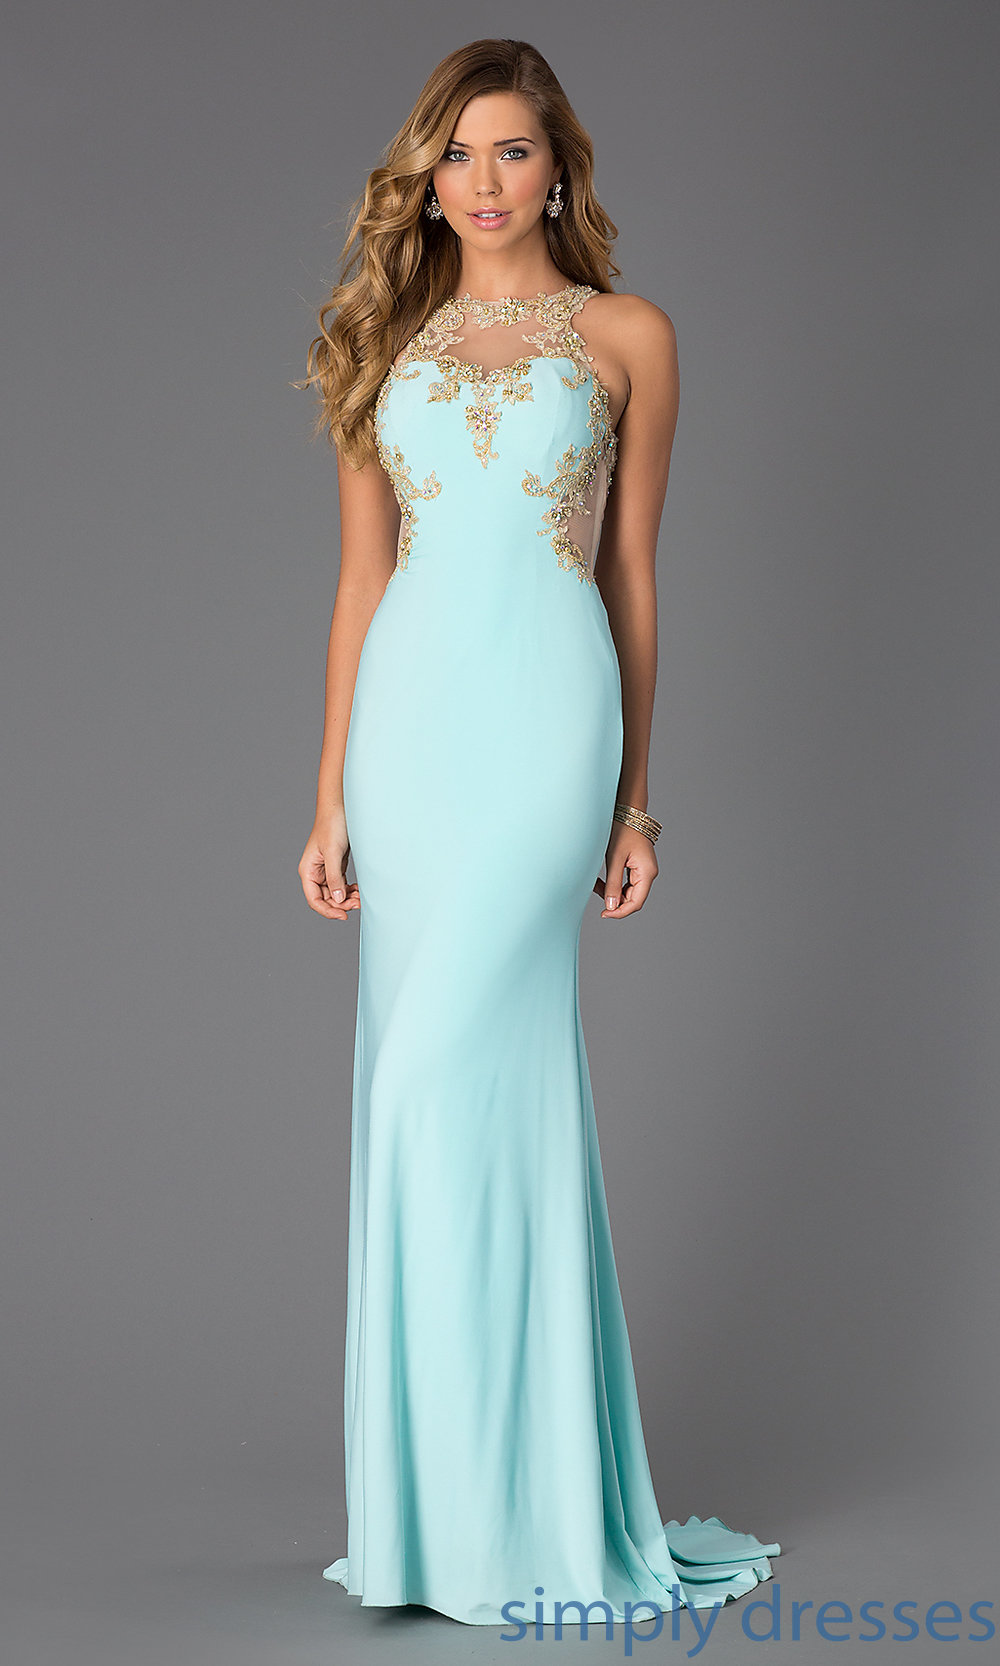 Tight Floor Length Dresses 2017 Fashion Trends Dresses Ask